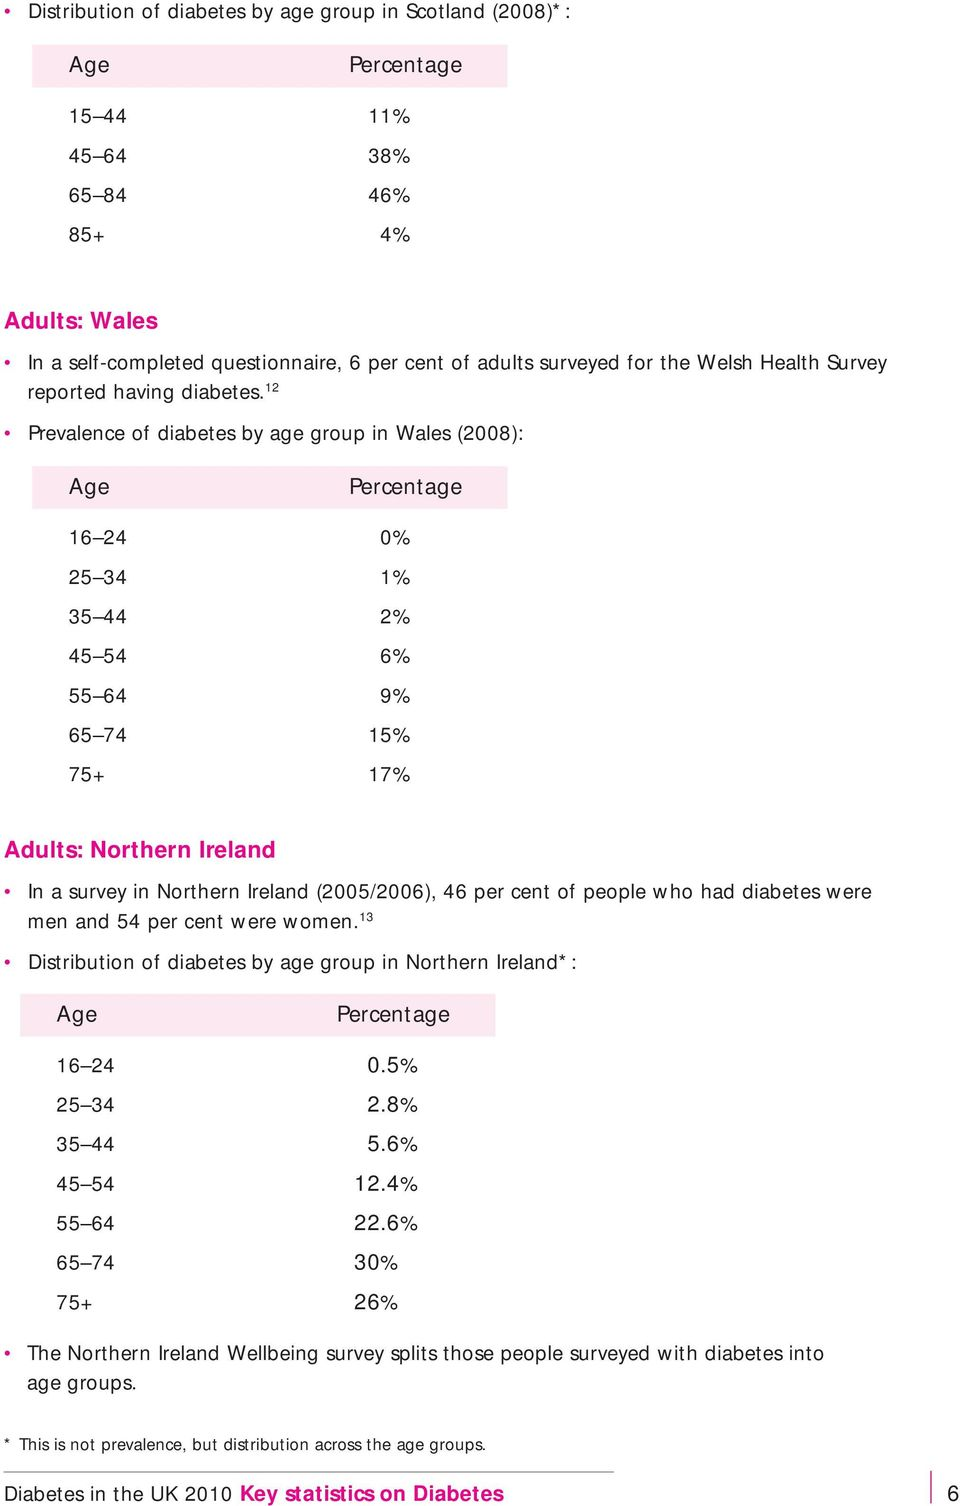 12 Prevalence of diabetes by age group in Wales (2008): Age Percentage 16 24 0% 25 34 1% 35 44 2% 45 54 6% 55 64 9% 65 74 15% 75+ 17% Adults: Northern Ireland In a survey in Northern Ireland